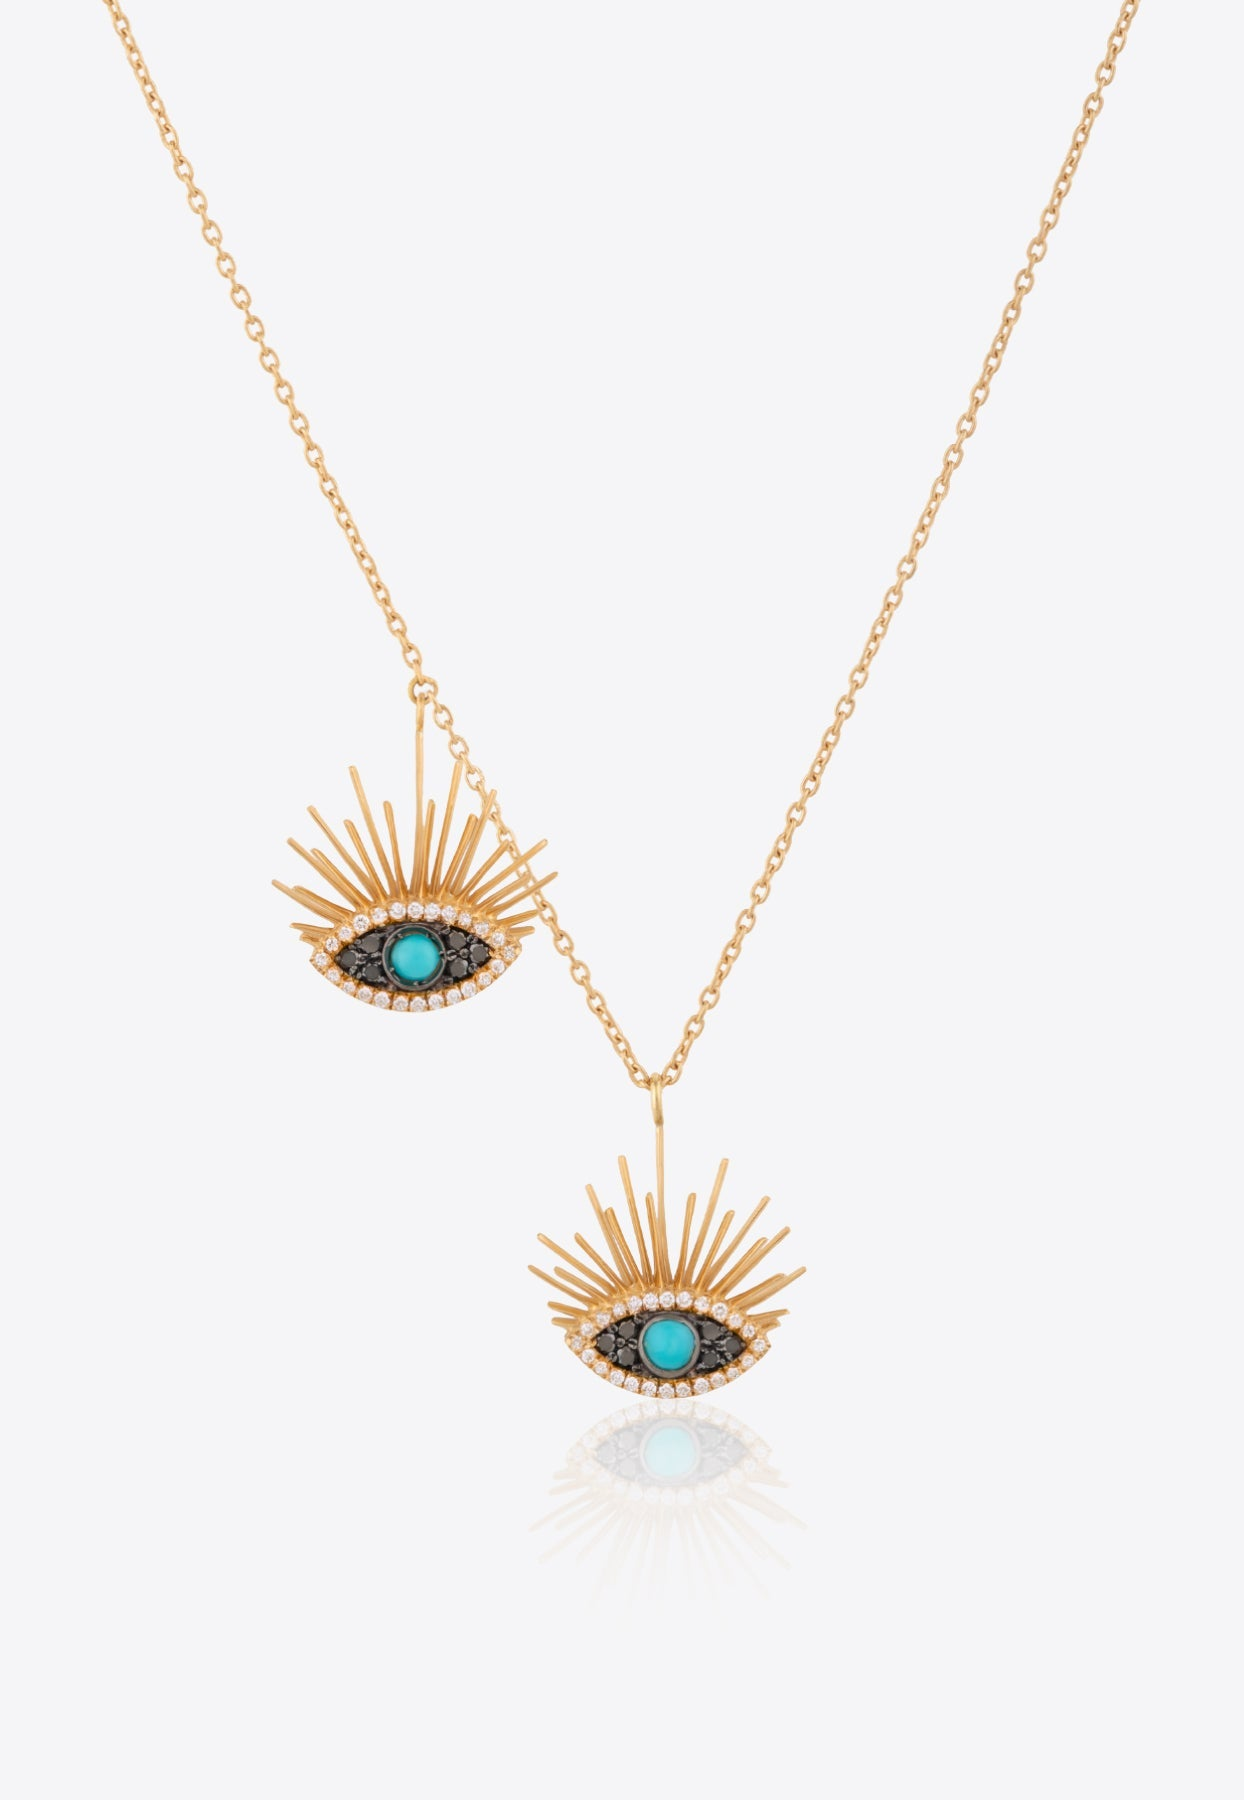 Falamank Sweet Collection Necklace In 18-karat Yellow In Gold